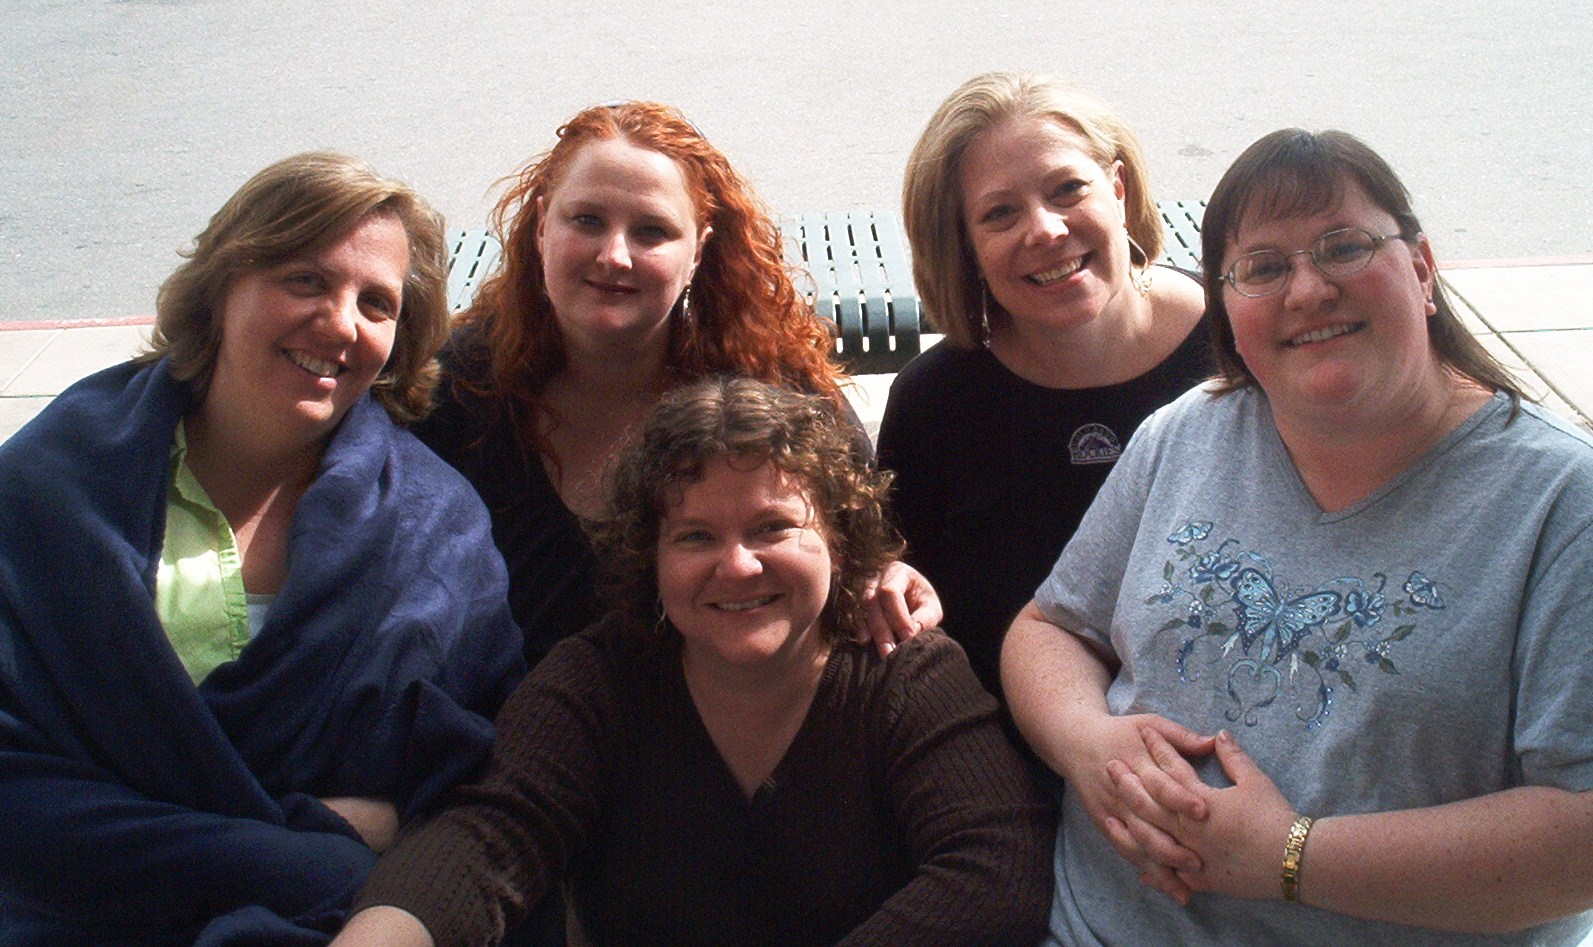 Paula, Niki, Heather, Jan, and Chelf